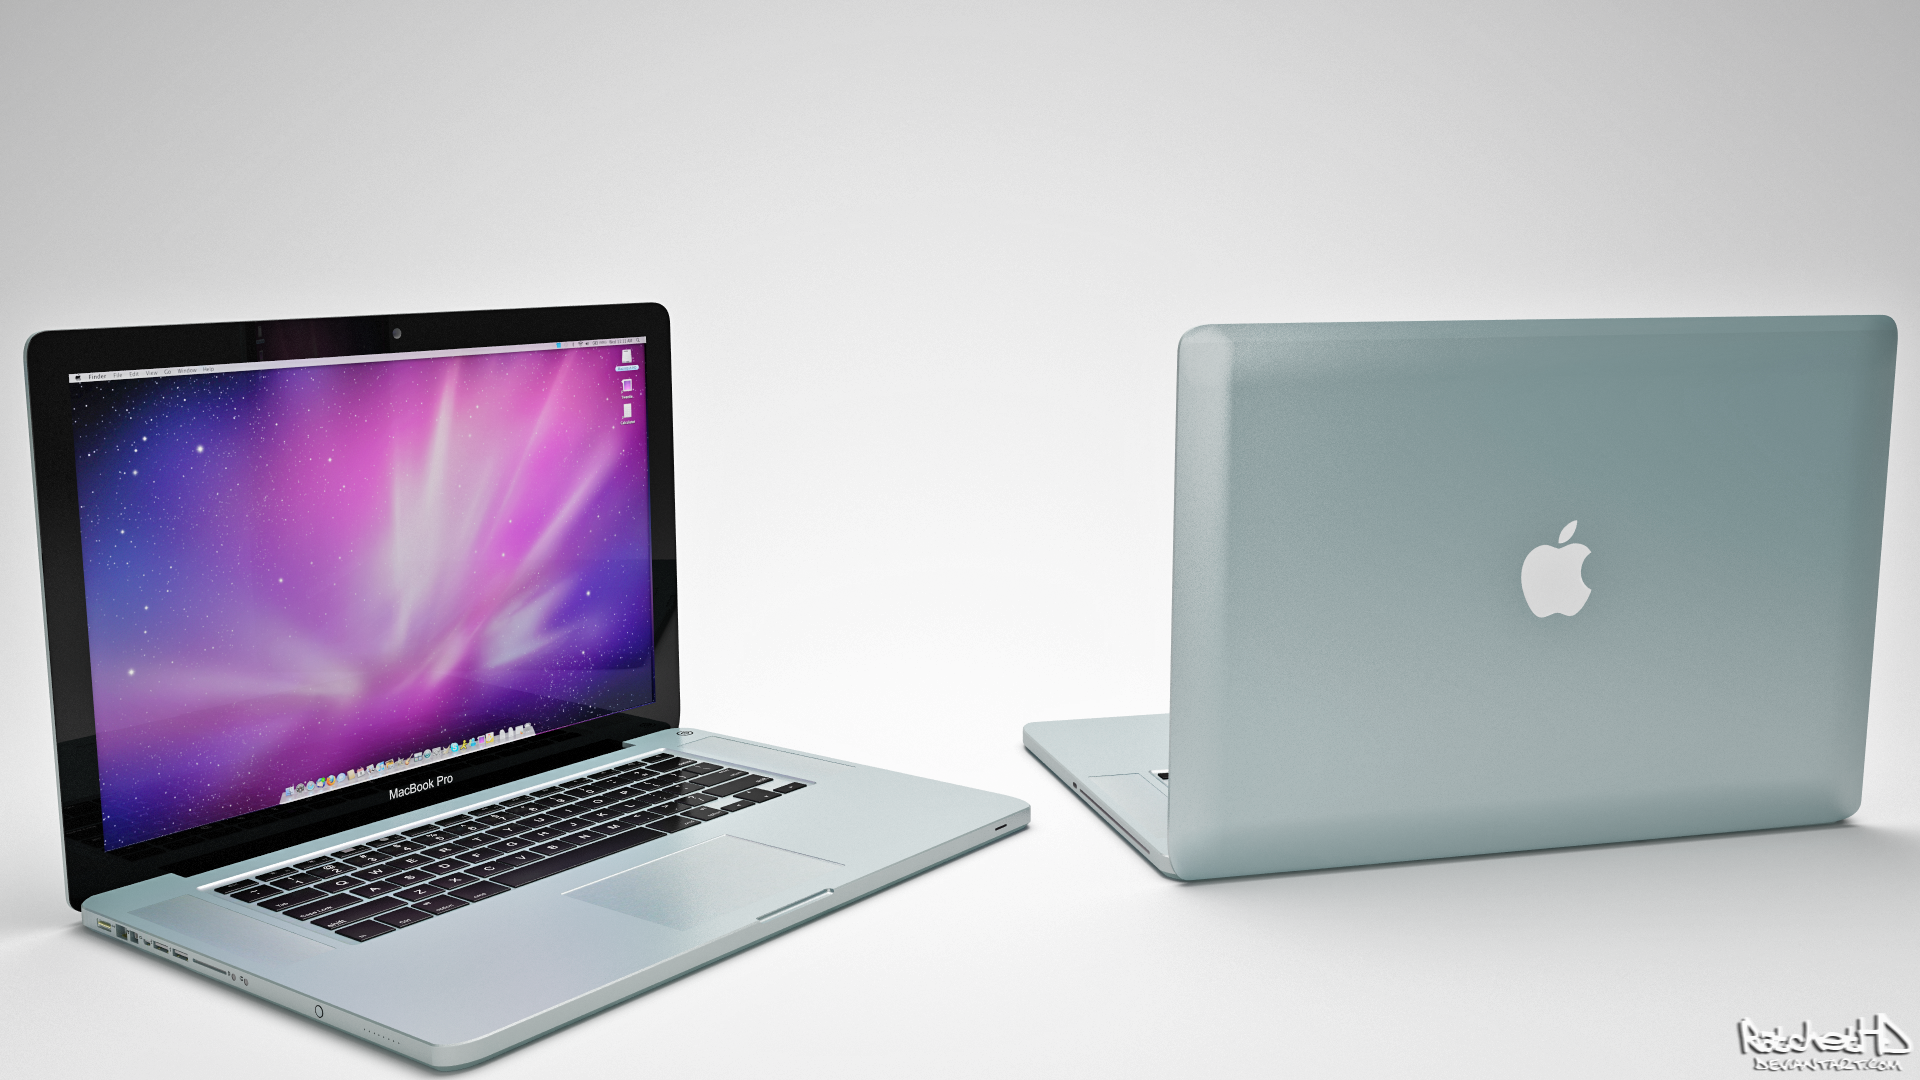 MacBook Pro by RatchetHD MacBook Pro by RatchetHD